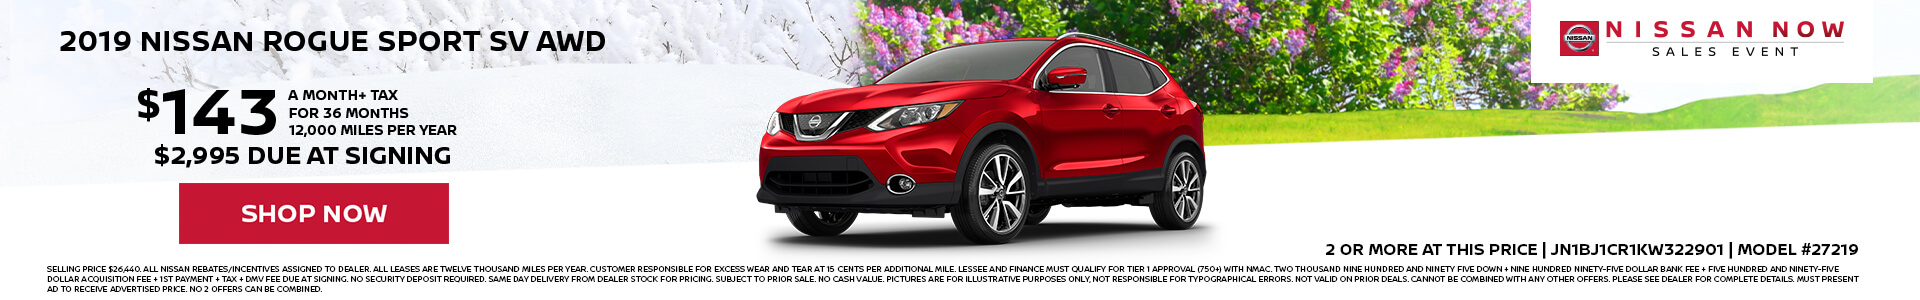 Nissan Rogue Sport $143 Lease